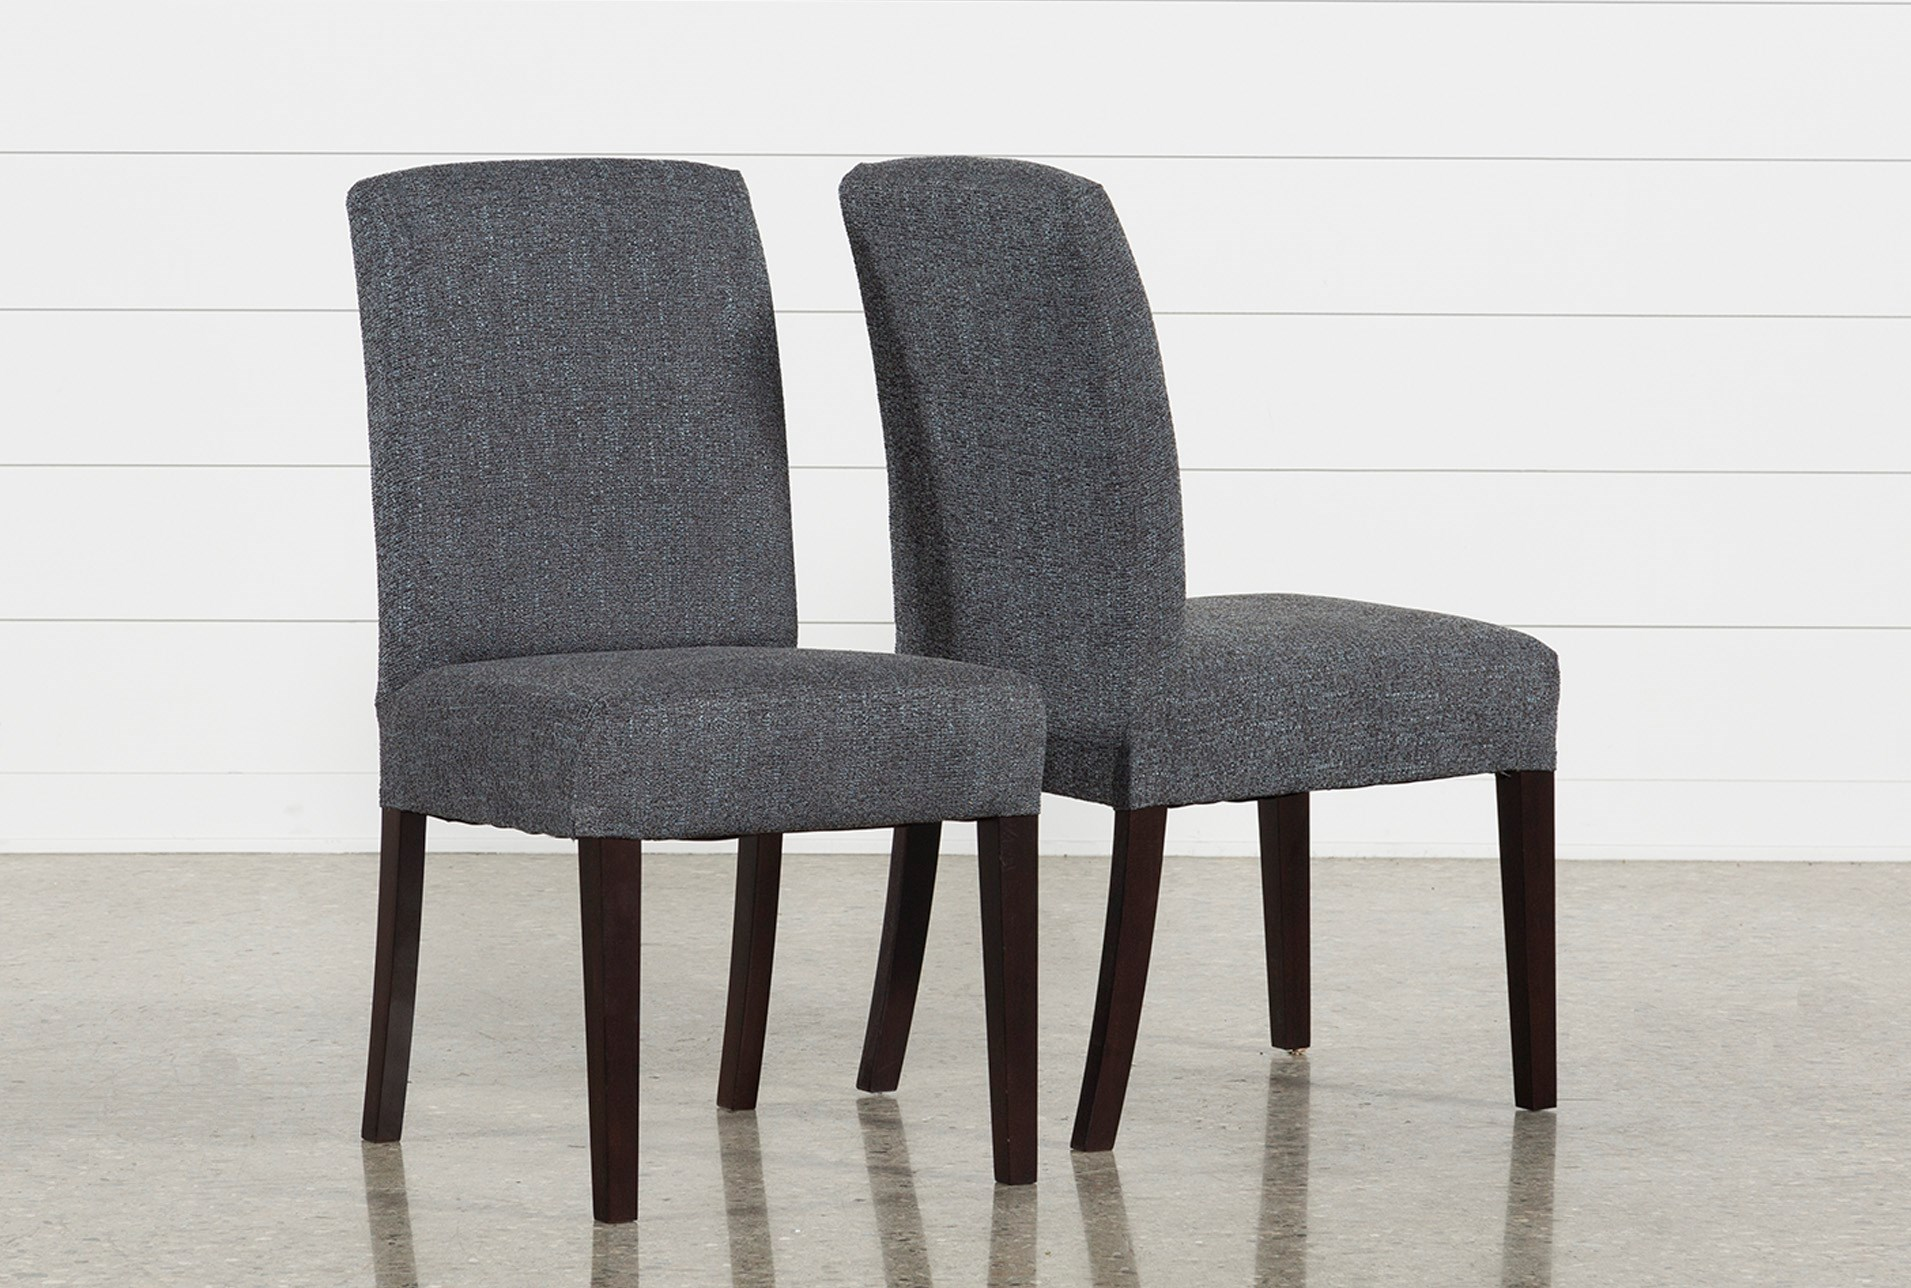 Garten storm chairs w espresso finish set of 2 qty 1 has been successfully added to your cart